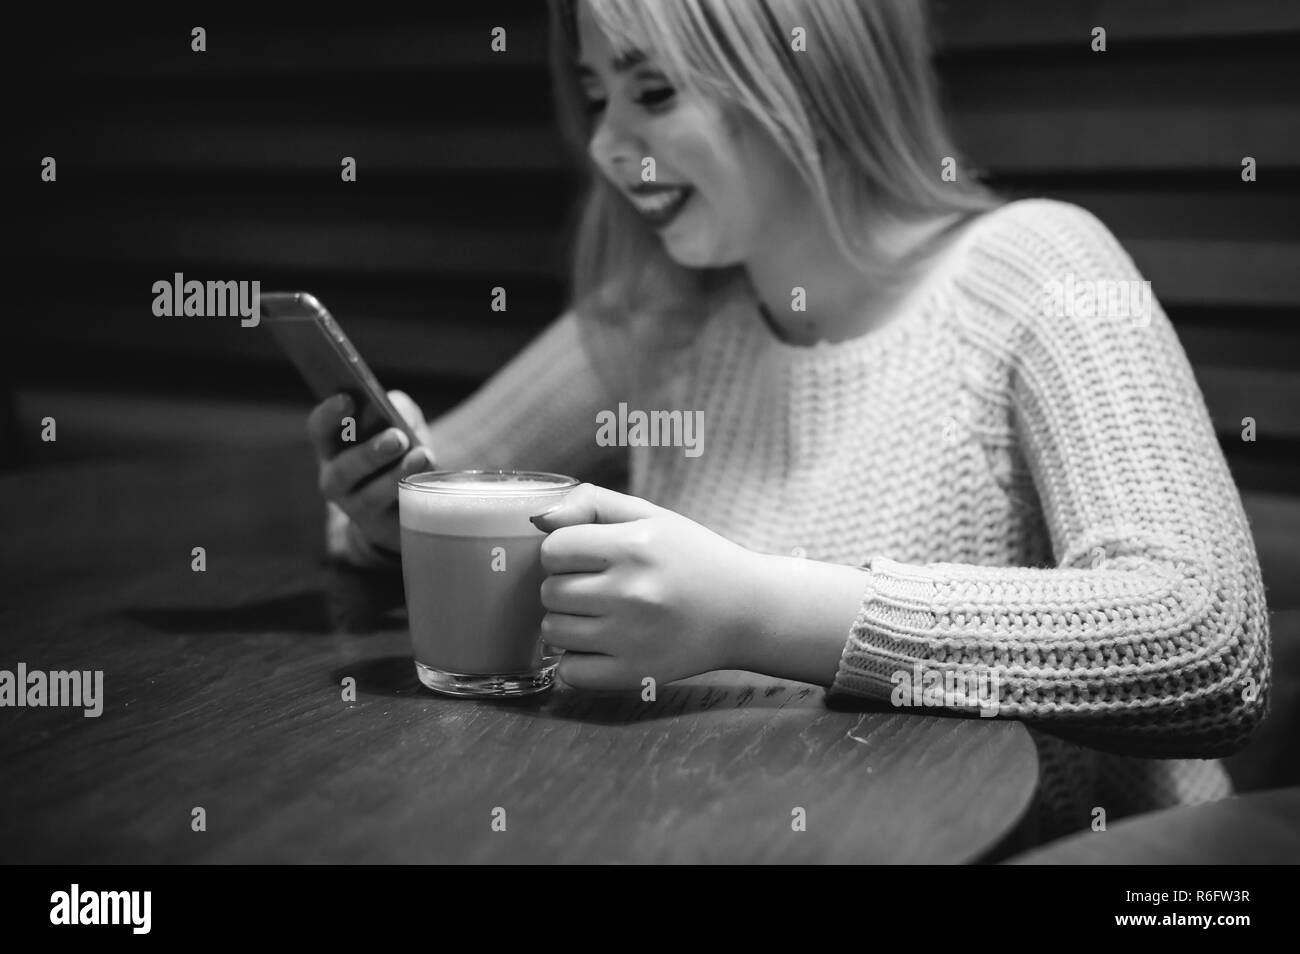 Young blonde woman in a knitted sweater sitting at a table in a cafe with a cup of coffee in her hands, spending time alone, doing internet communication through wifi - Stock Image